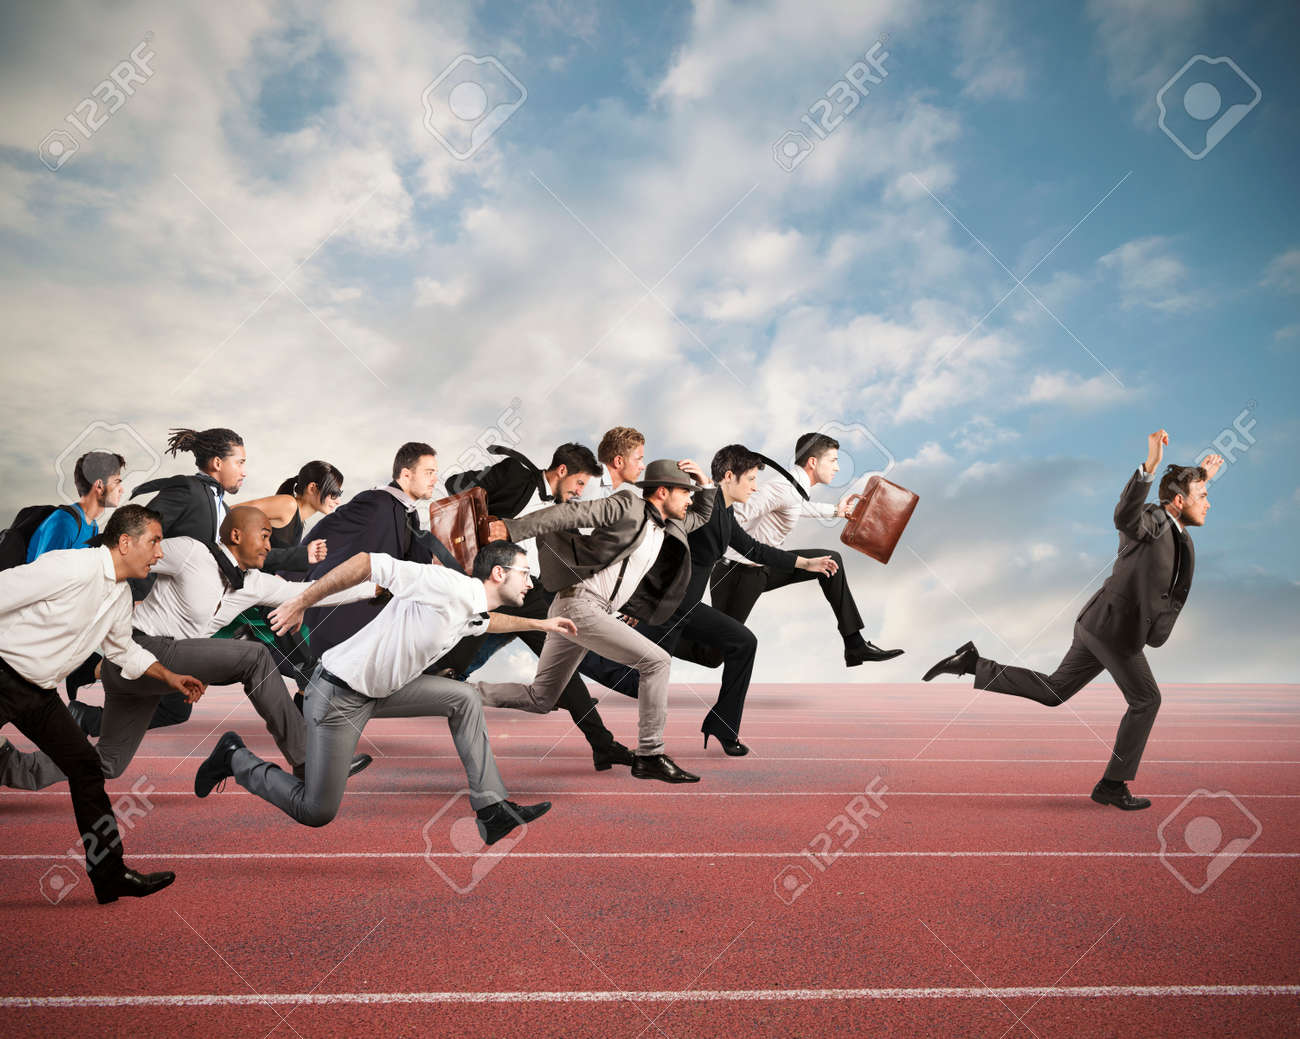 Businessman exults winning during a race with opponents Standard-Bild - 64803658